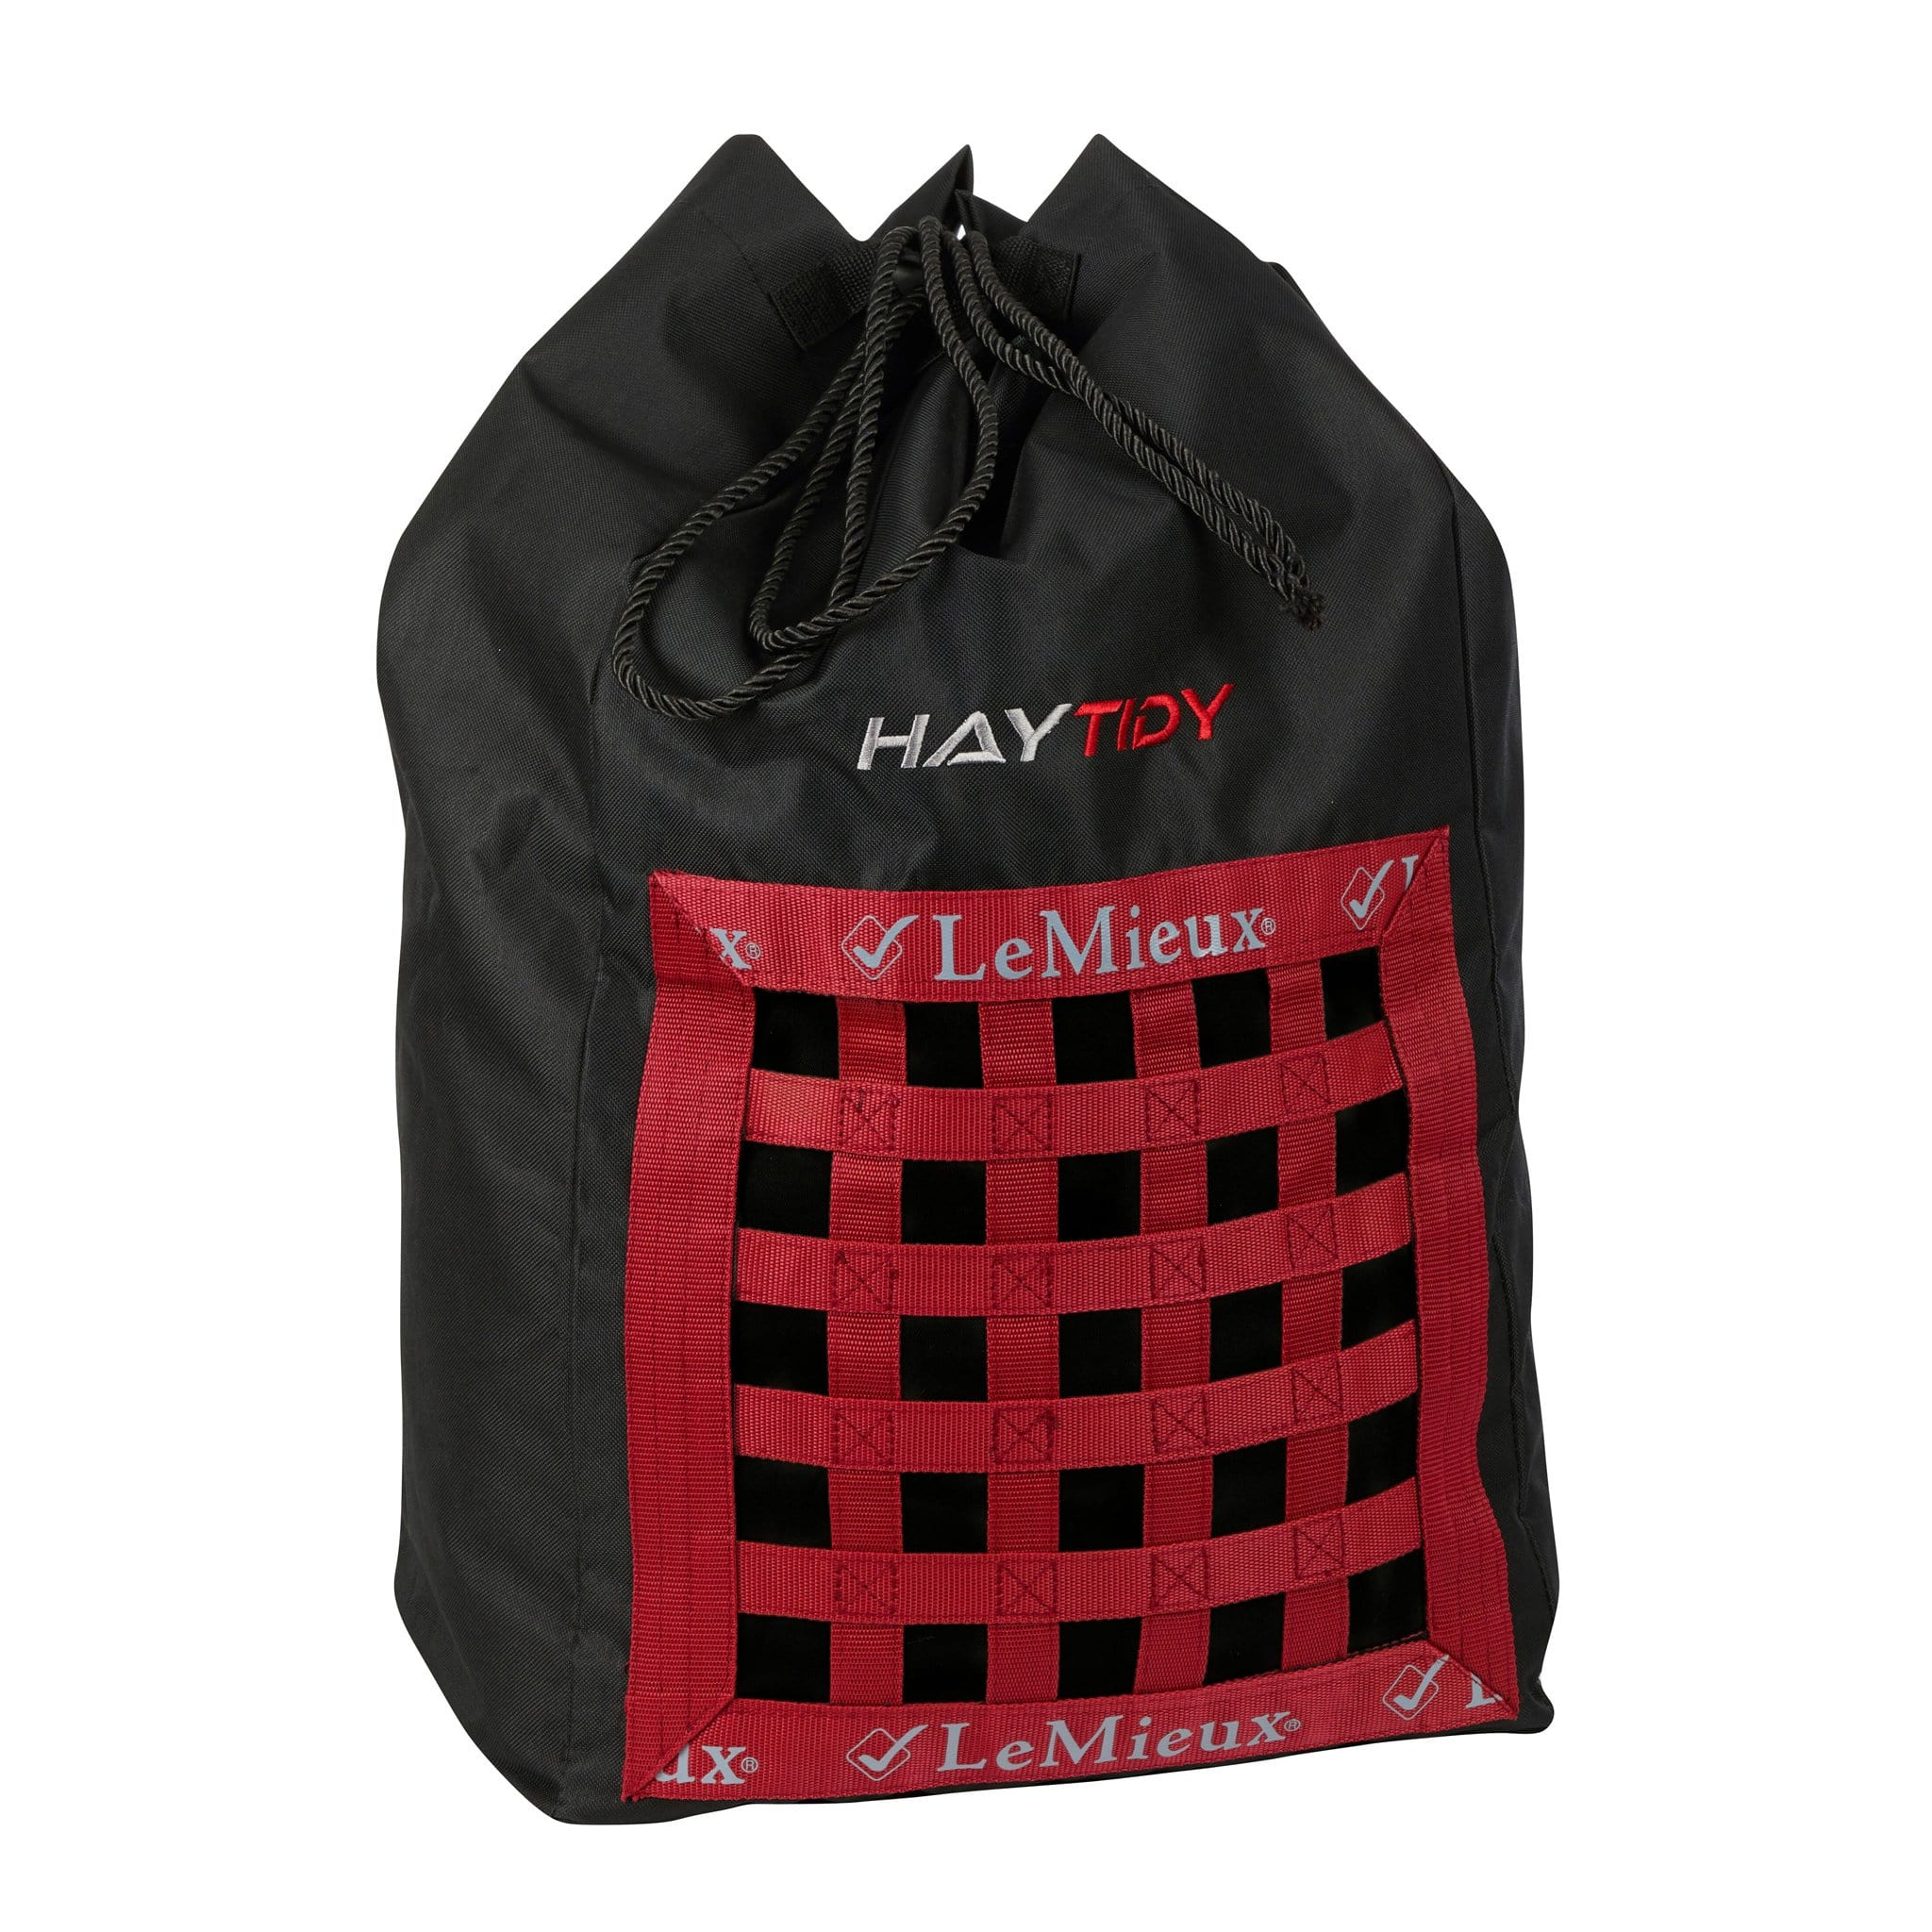 LeMieux ShowKit Hay Tidy Bag 6252 Black